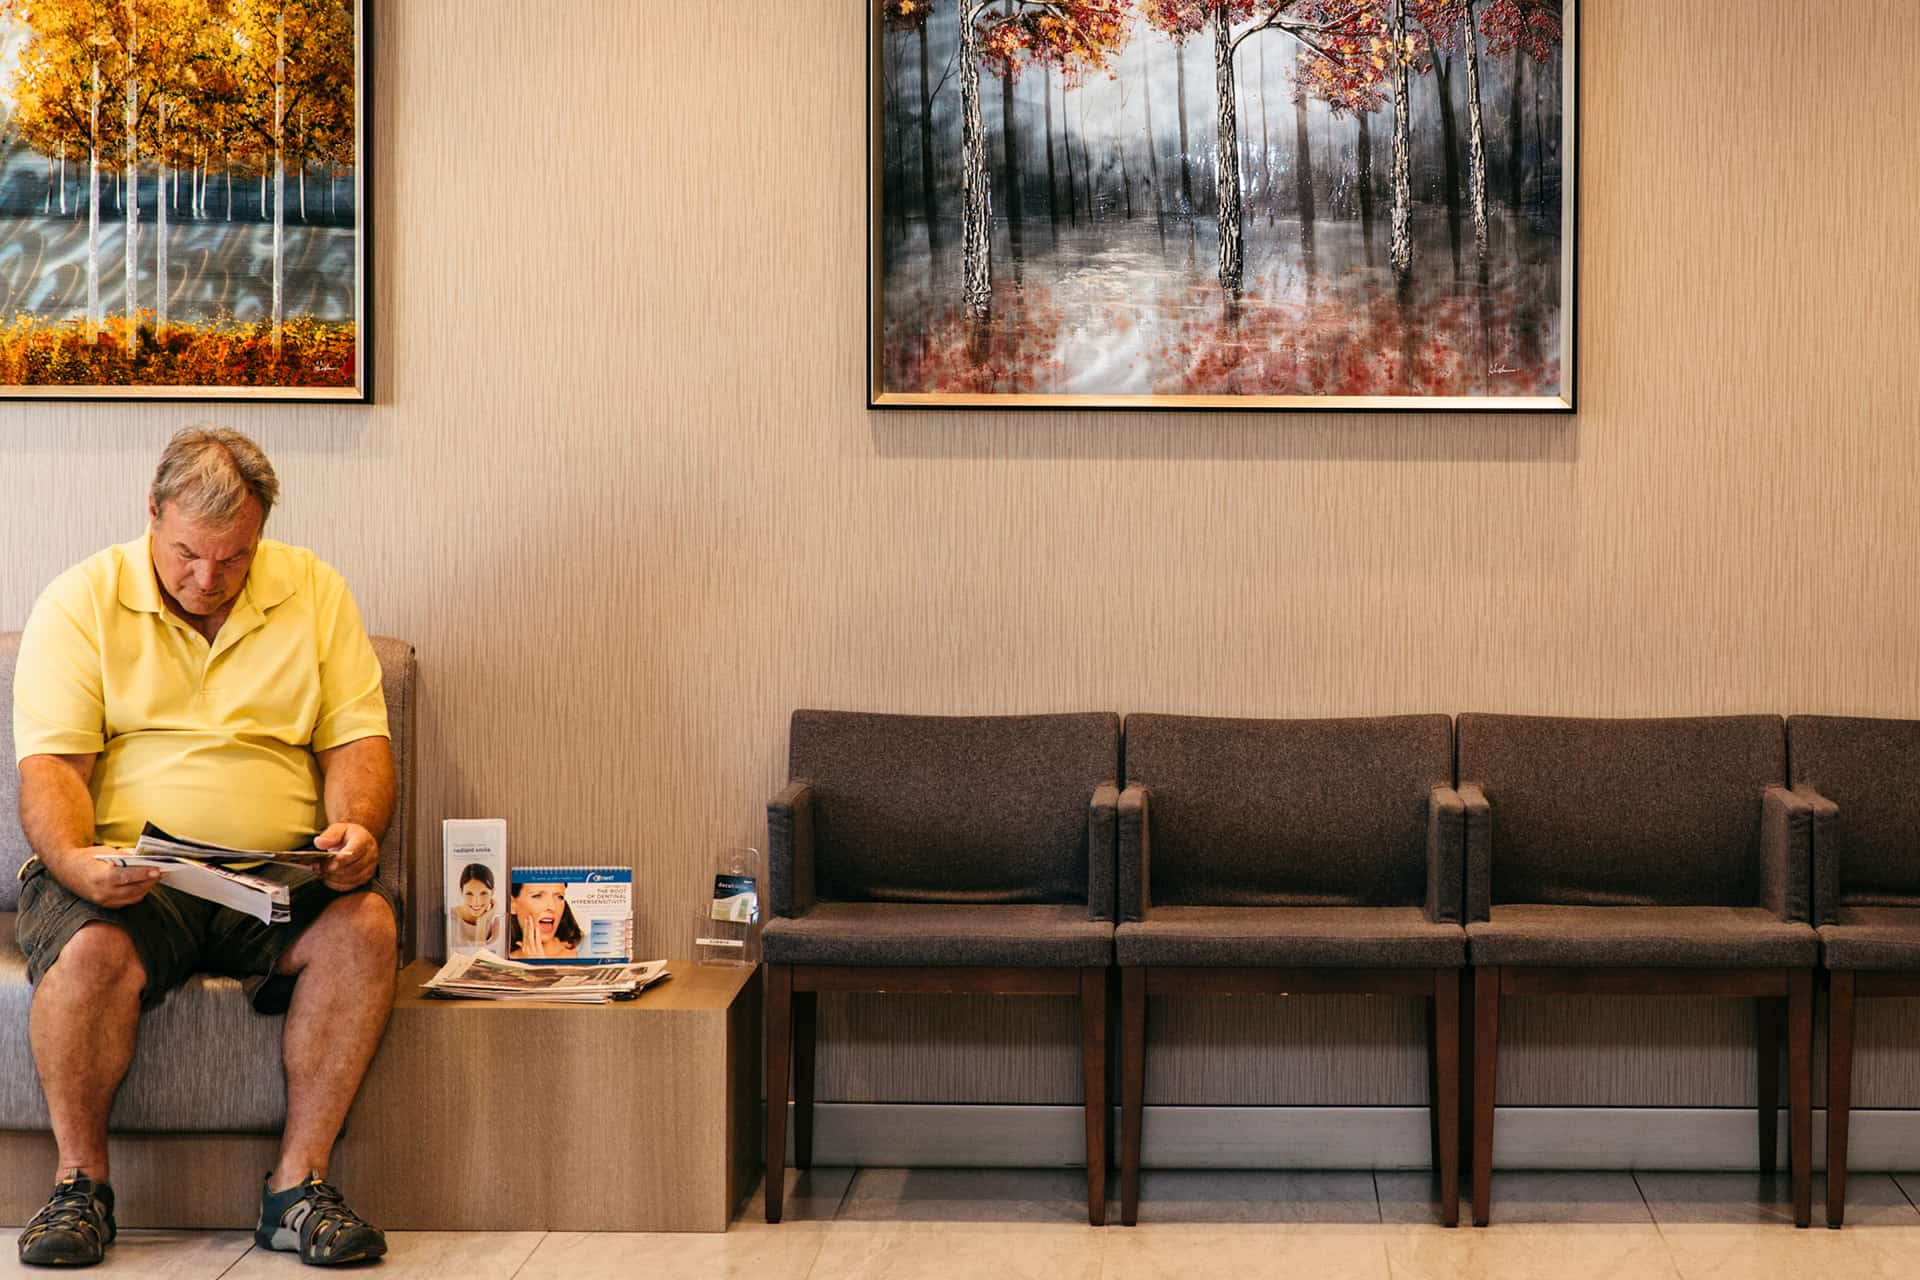 Older man waiting for his appointment